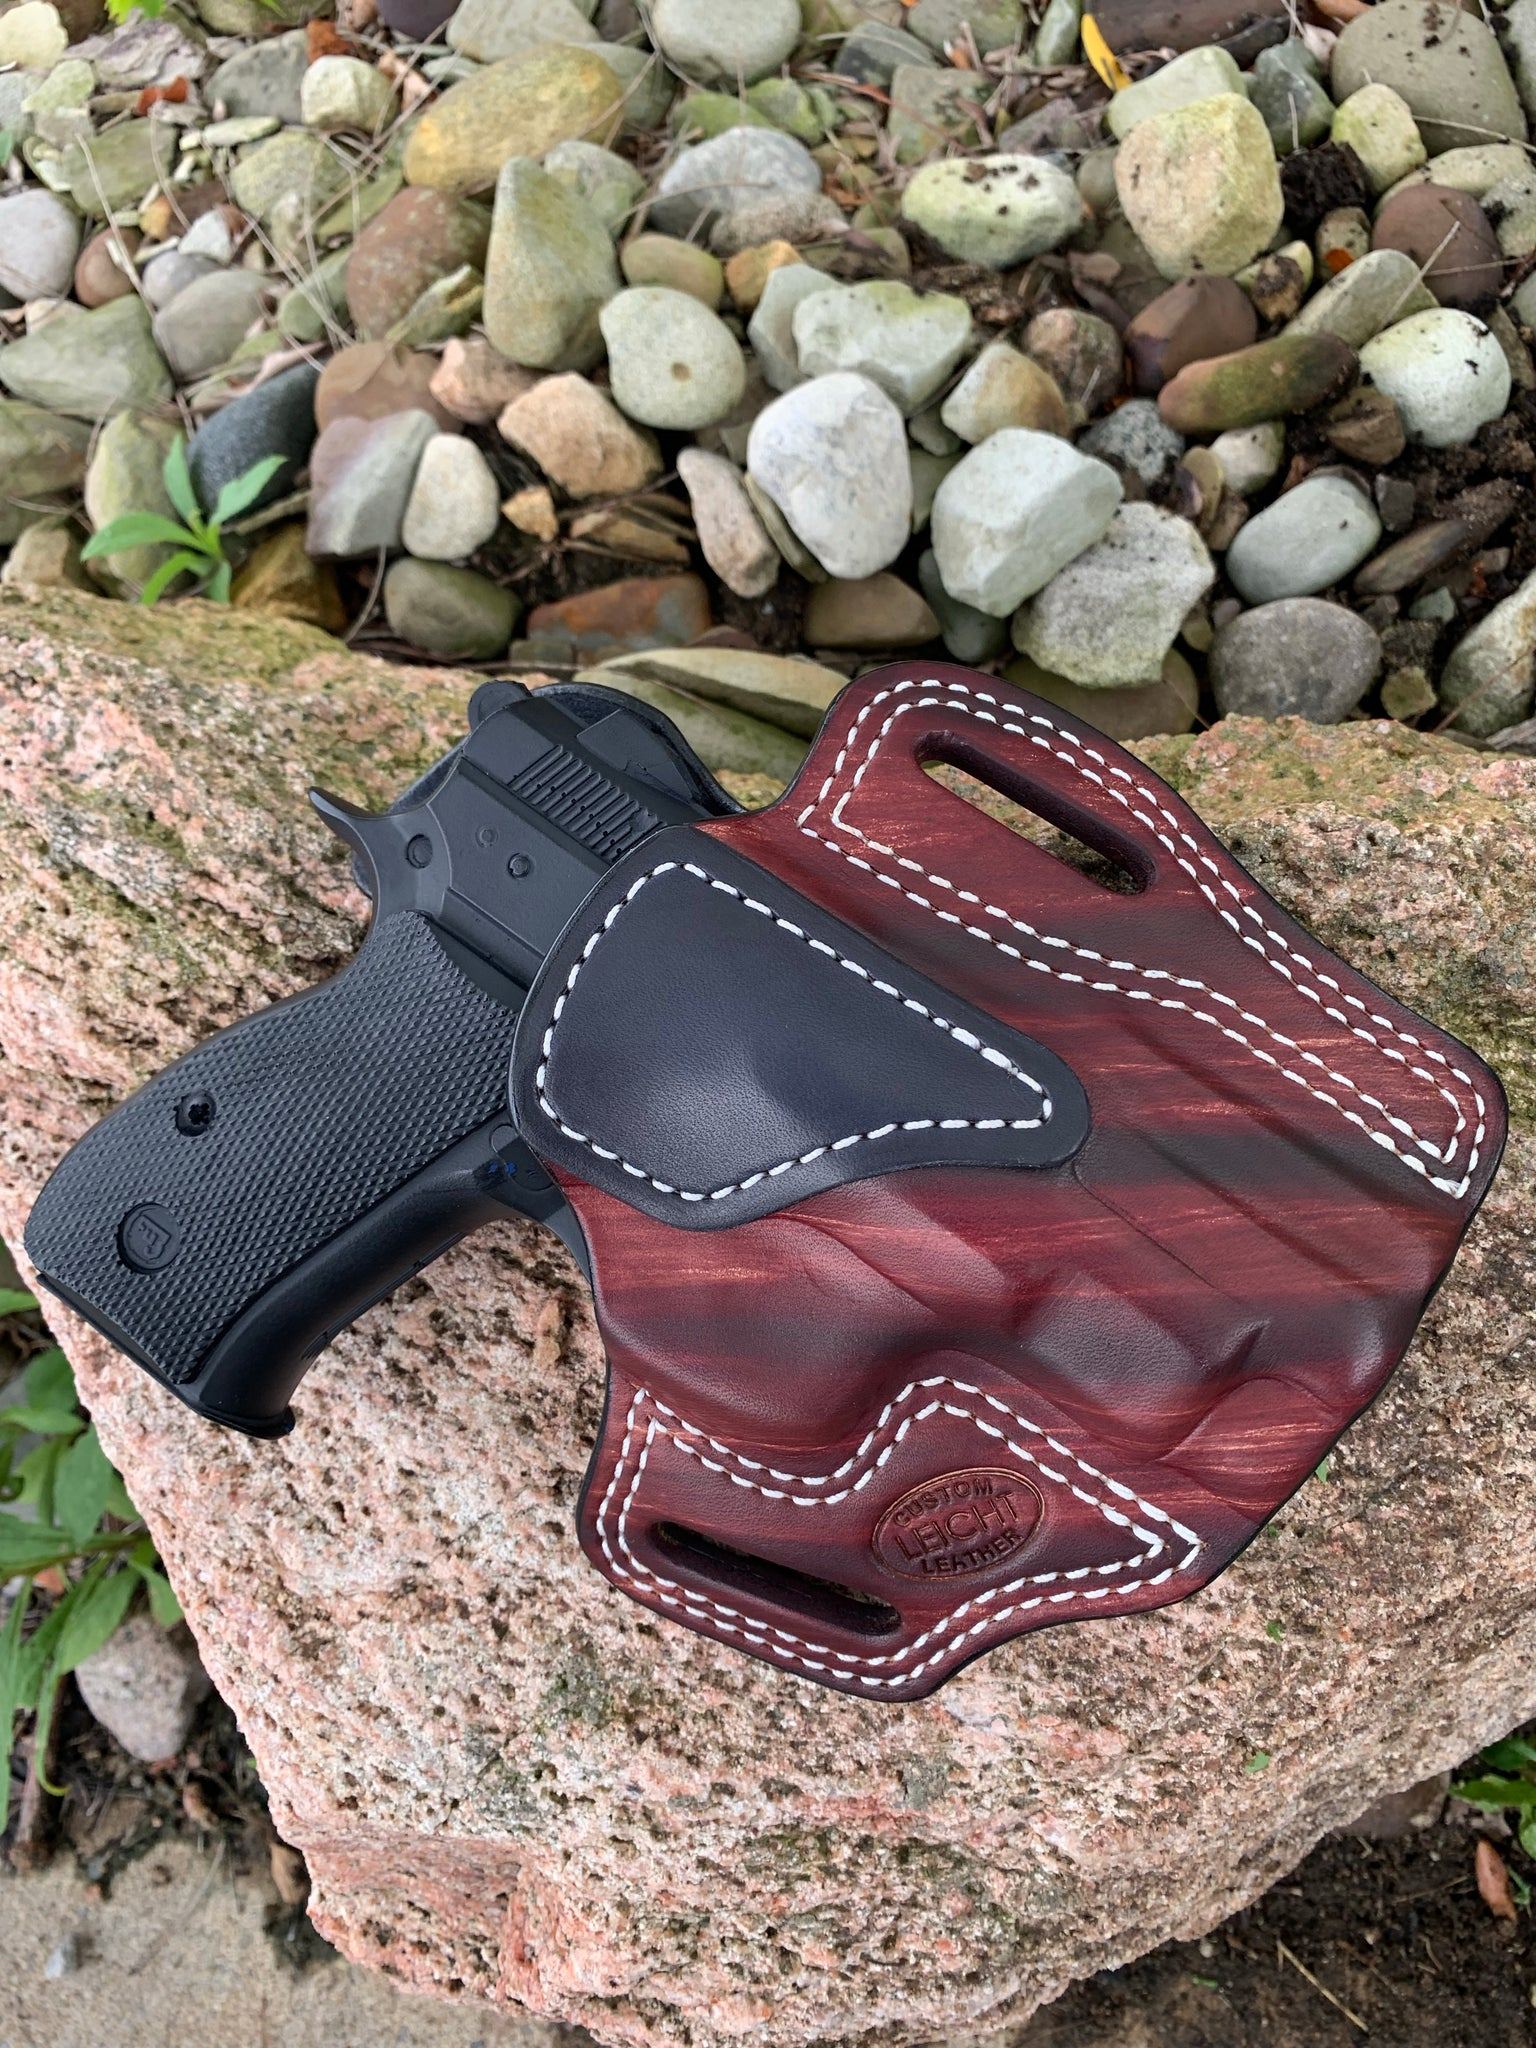 CZ 75 D PCR COMPACT OWB HOLSTER